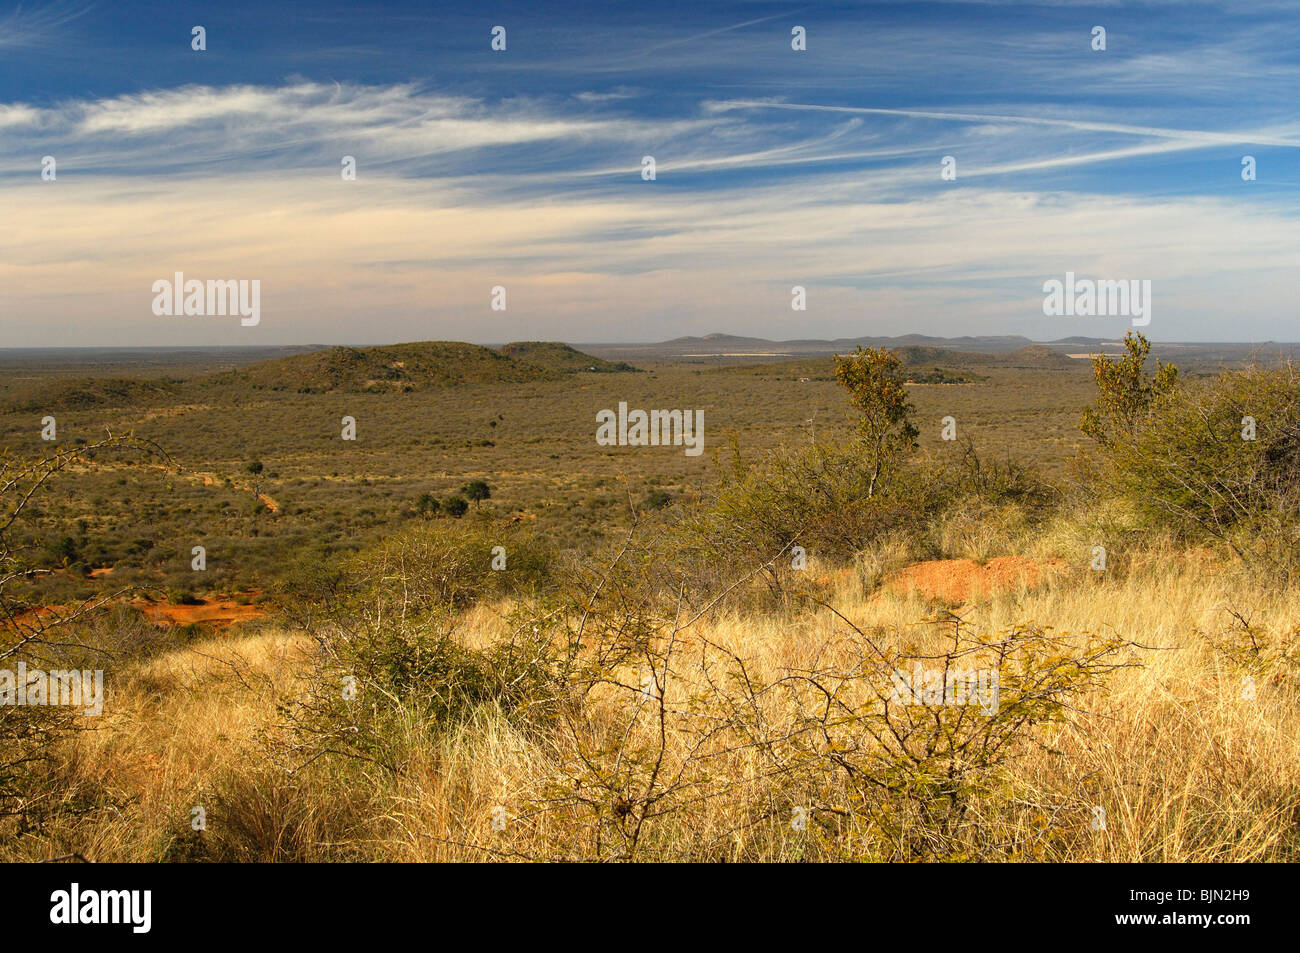 View across the vast African savanna landscape of the Madikwe Game Reserve, South Africa - Stock Image